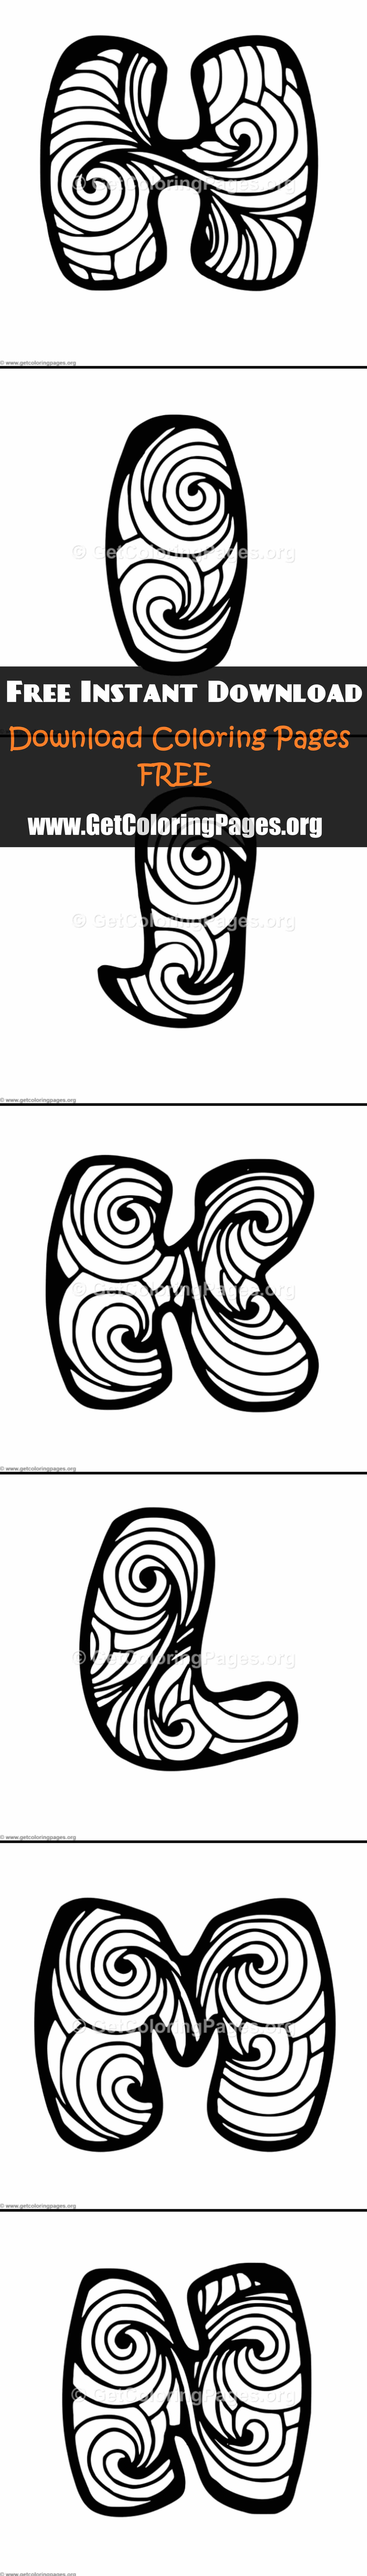 Zentangle Alphabet Letter Coloring Pages